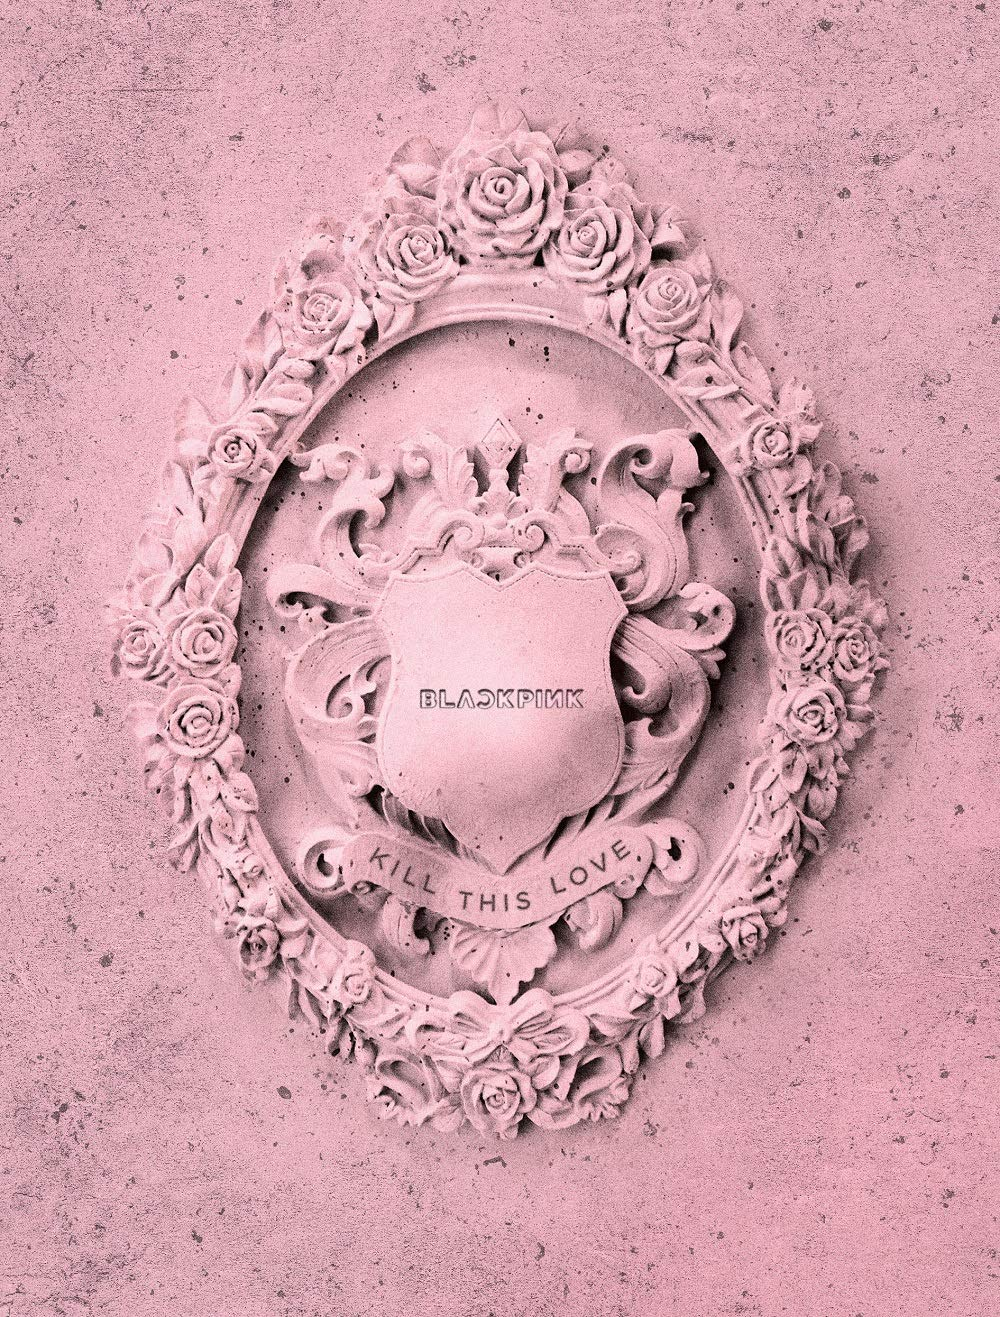 YG Blackpink - Kill This Love [Pink ver.] (2nd Mini Album) CD+52p Photobook+Lyrics Book+4Photocards+Polaroid Photocard+Sticker Set+On Pack Poster+Folded Poster+Double Side Extra Photocards Set by YG